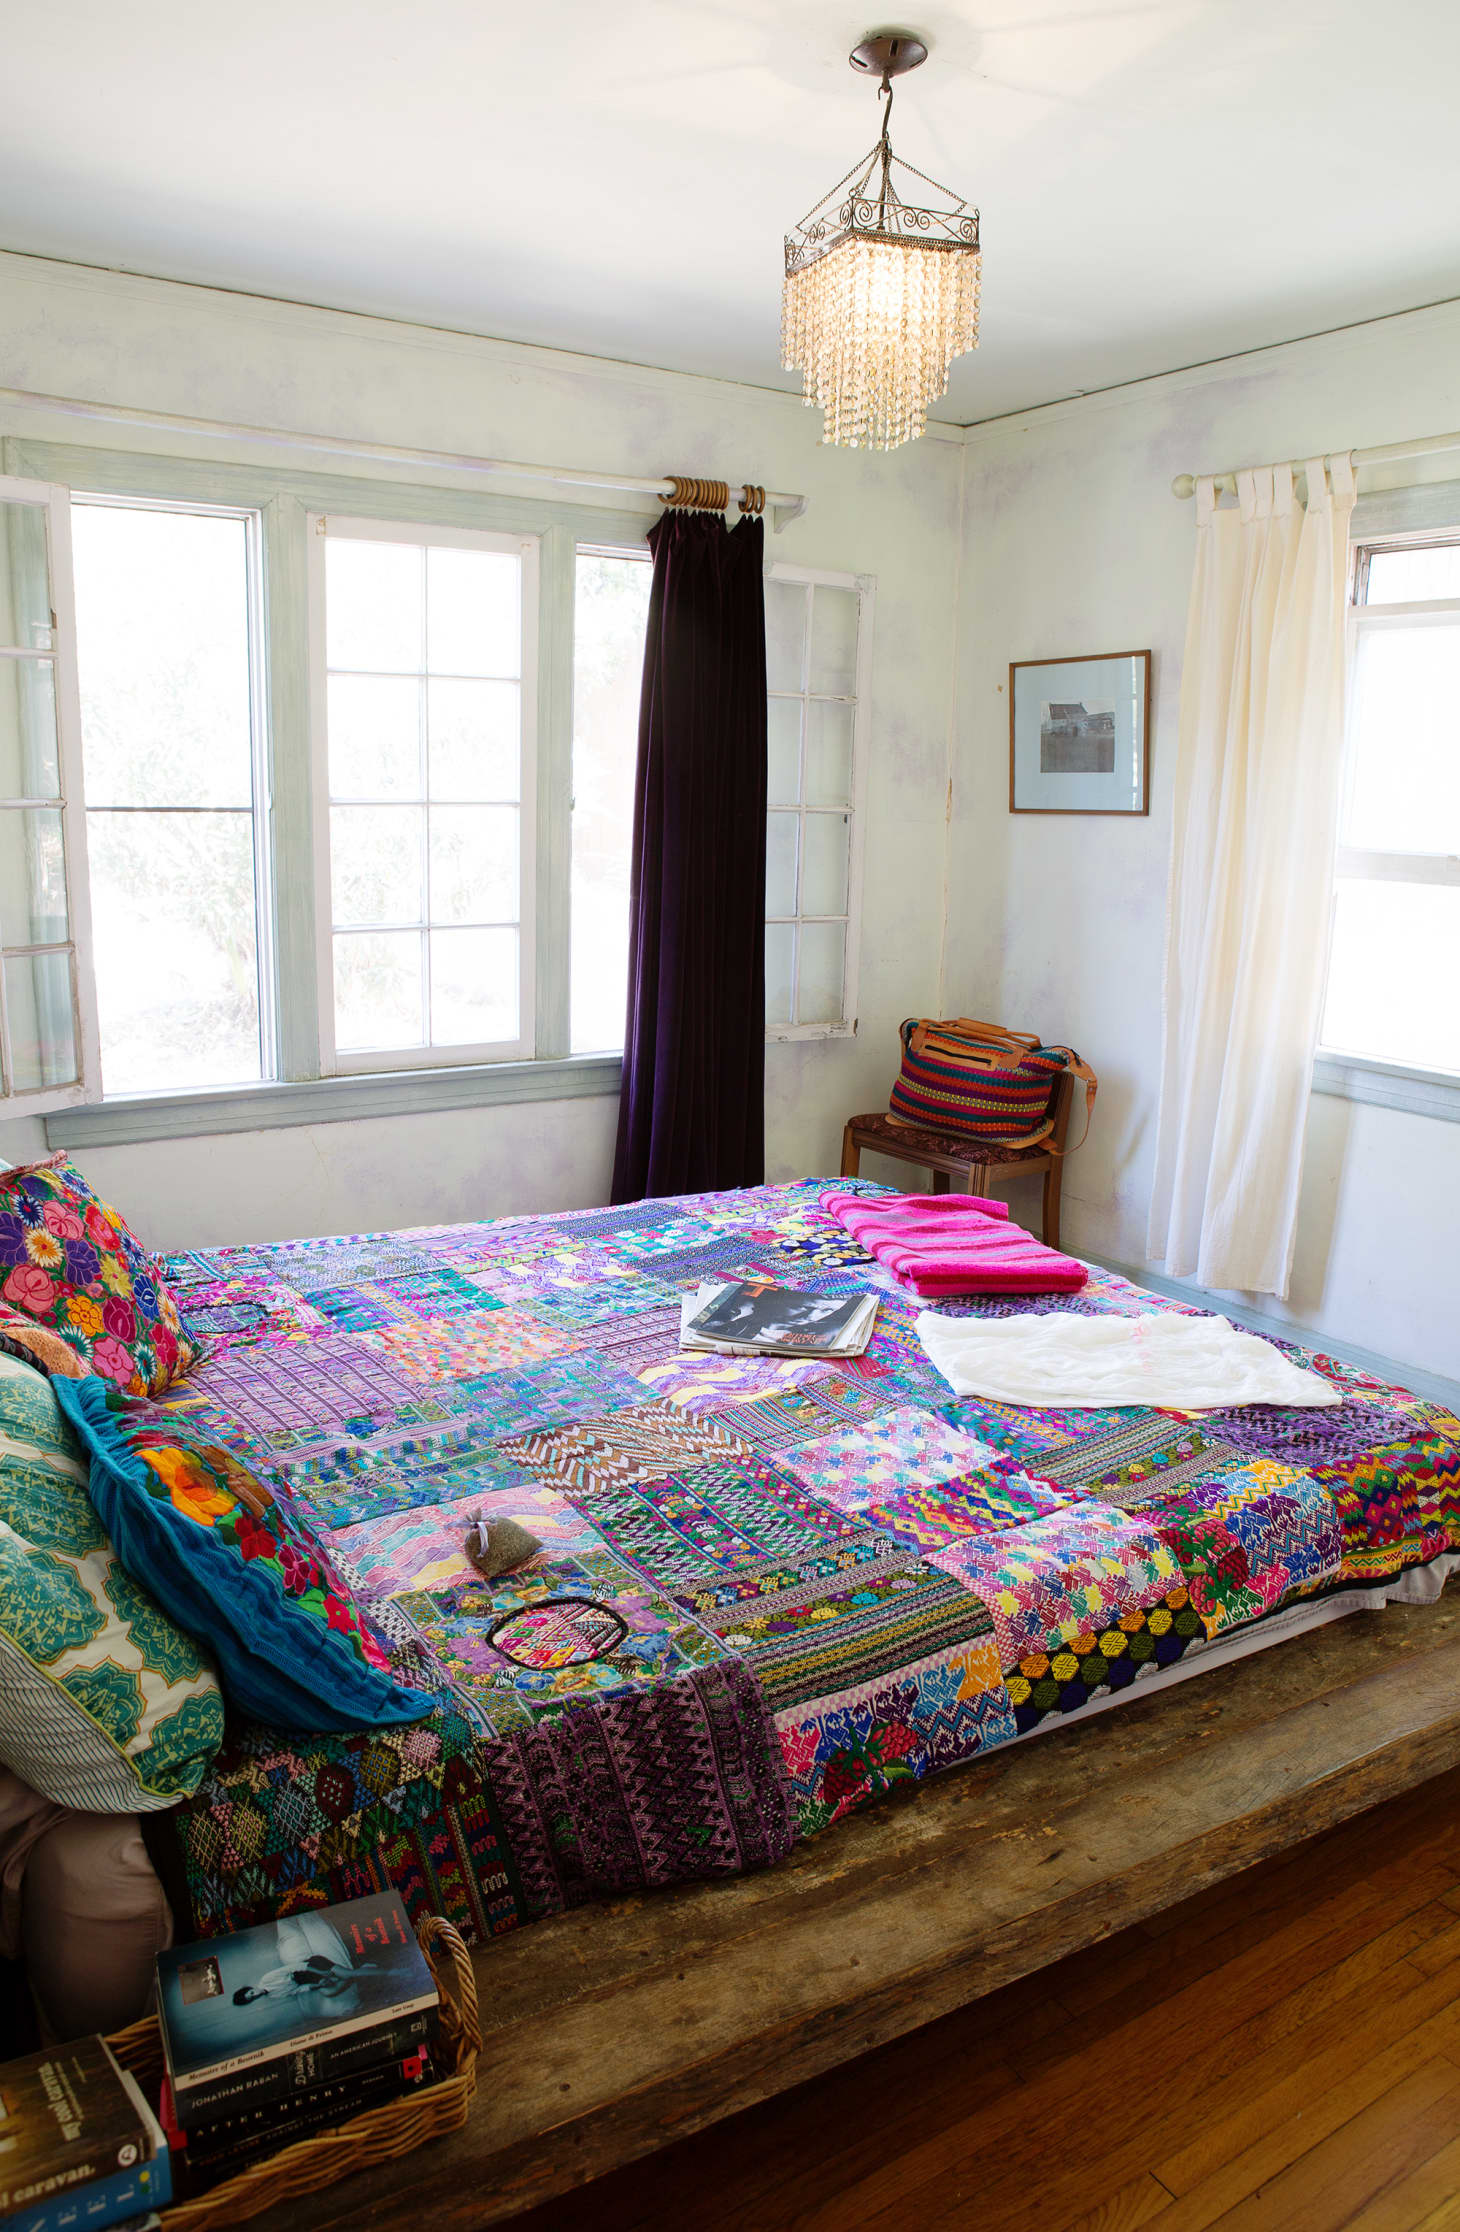 Bohemian-Style Master Bedrooms: 10 Ideas to Steal ...